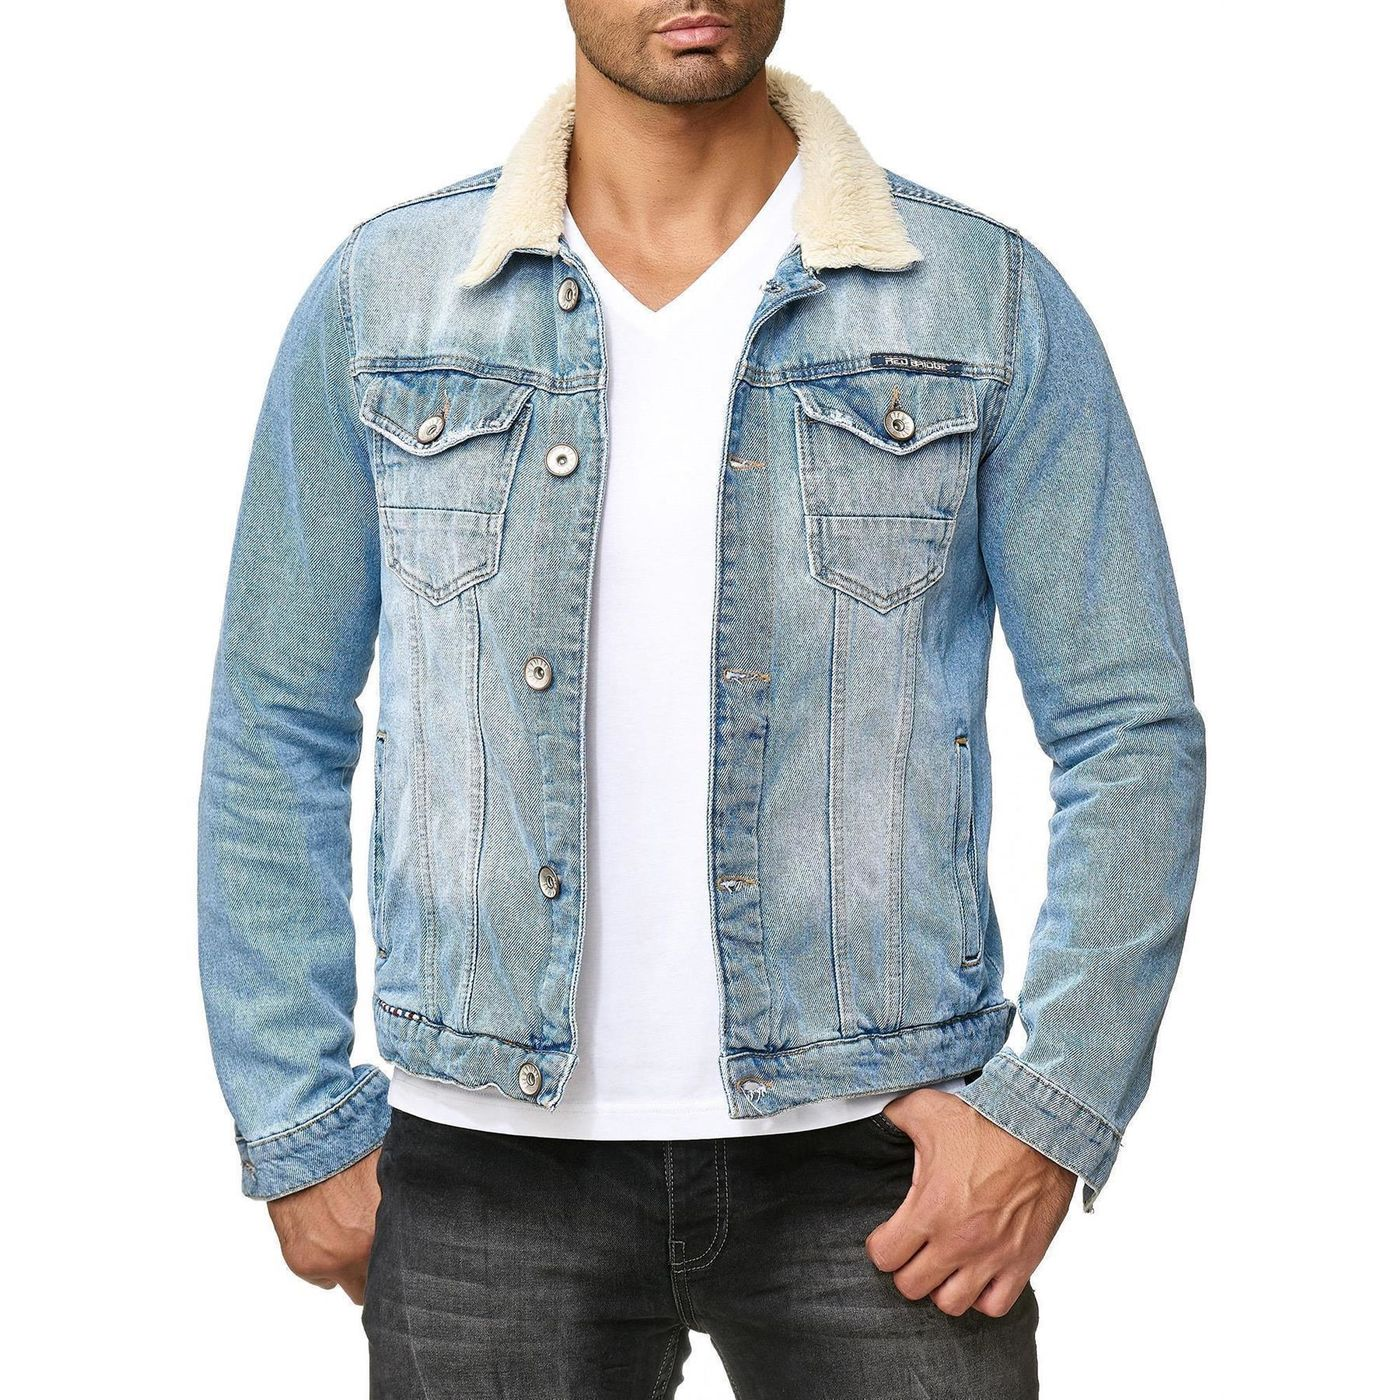 red bridge herren jeansjacke trucker sherpa jacke bergangsjacke deni 59 99. Black Bedroom Furniture Sets. Home Design Ideas